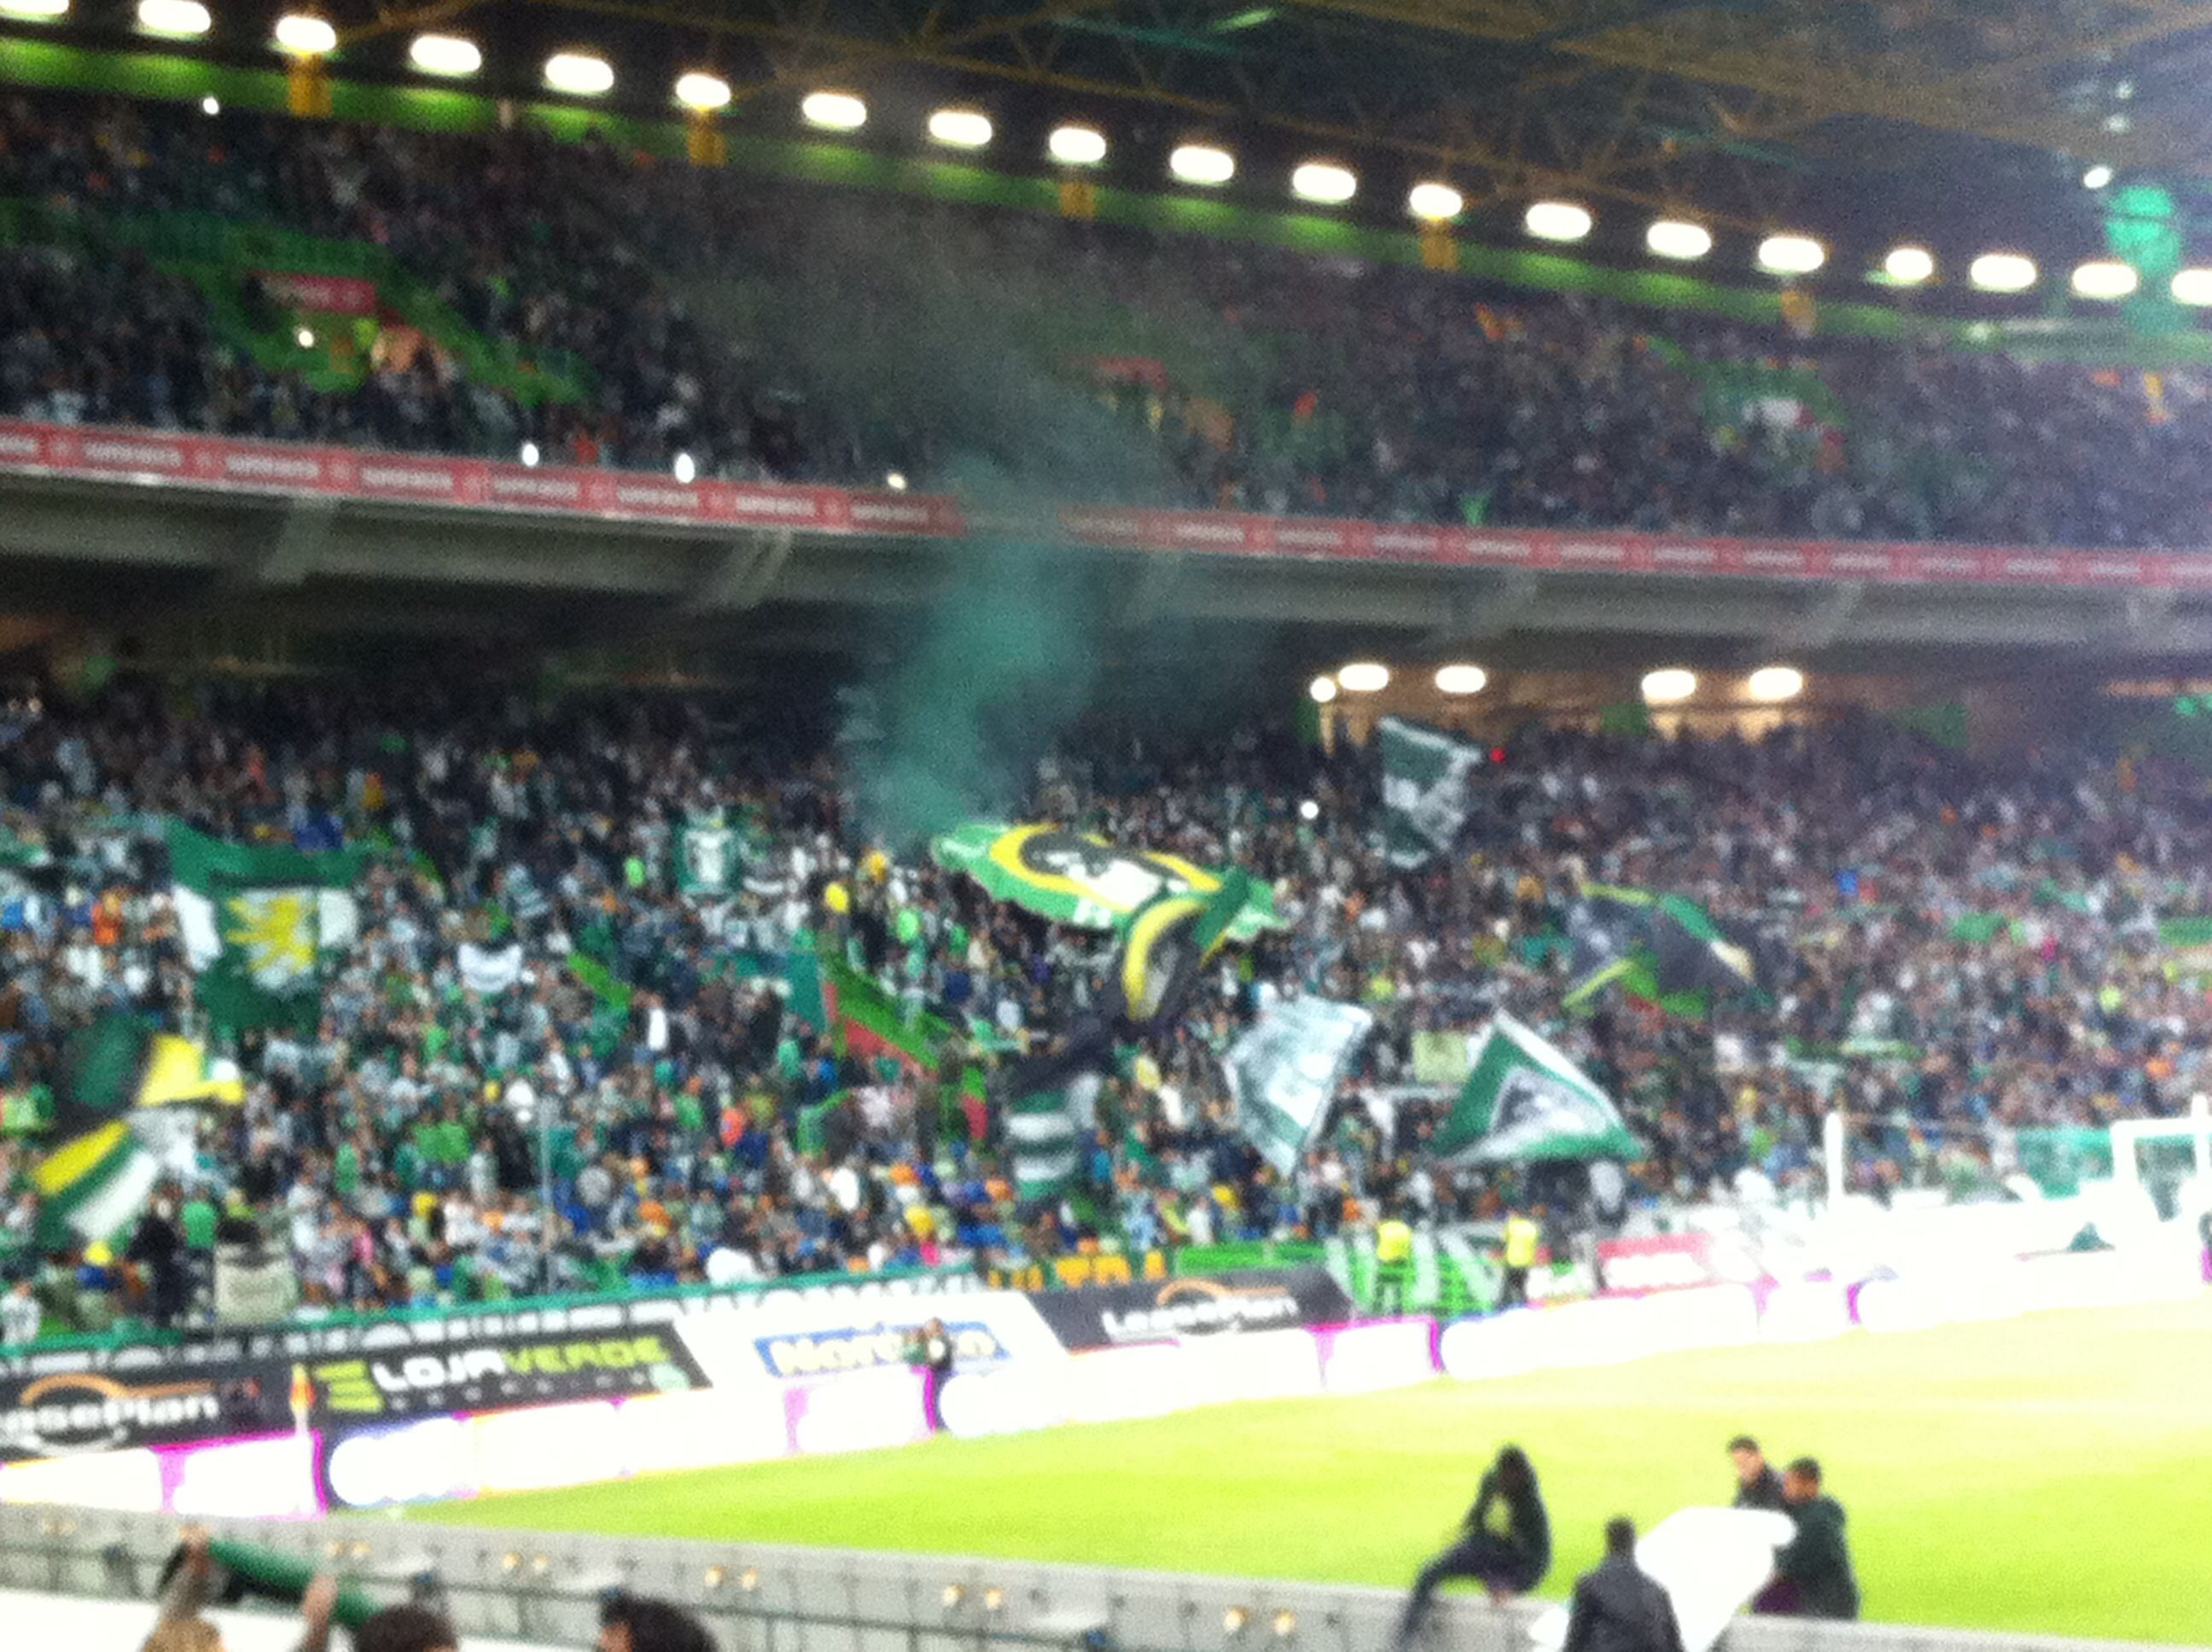 Fans with their powerful voices and flags #sporting #lisbon #portugal